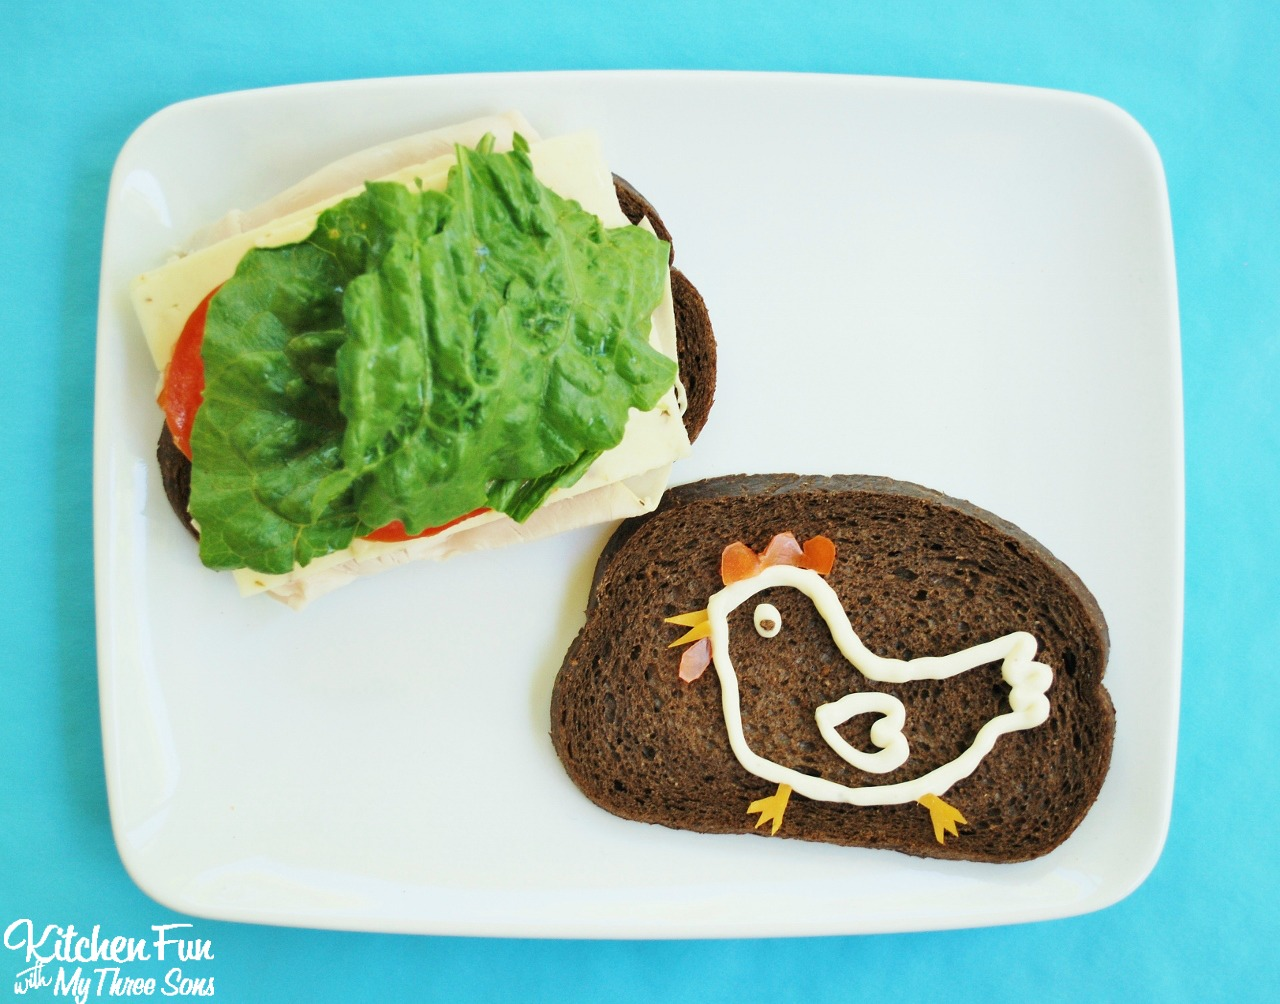 Fun Lunch Ideas for Kids using Mayo from KitchenFunWithMy3Sons.com